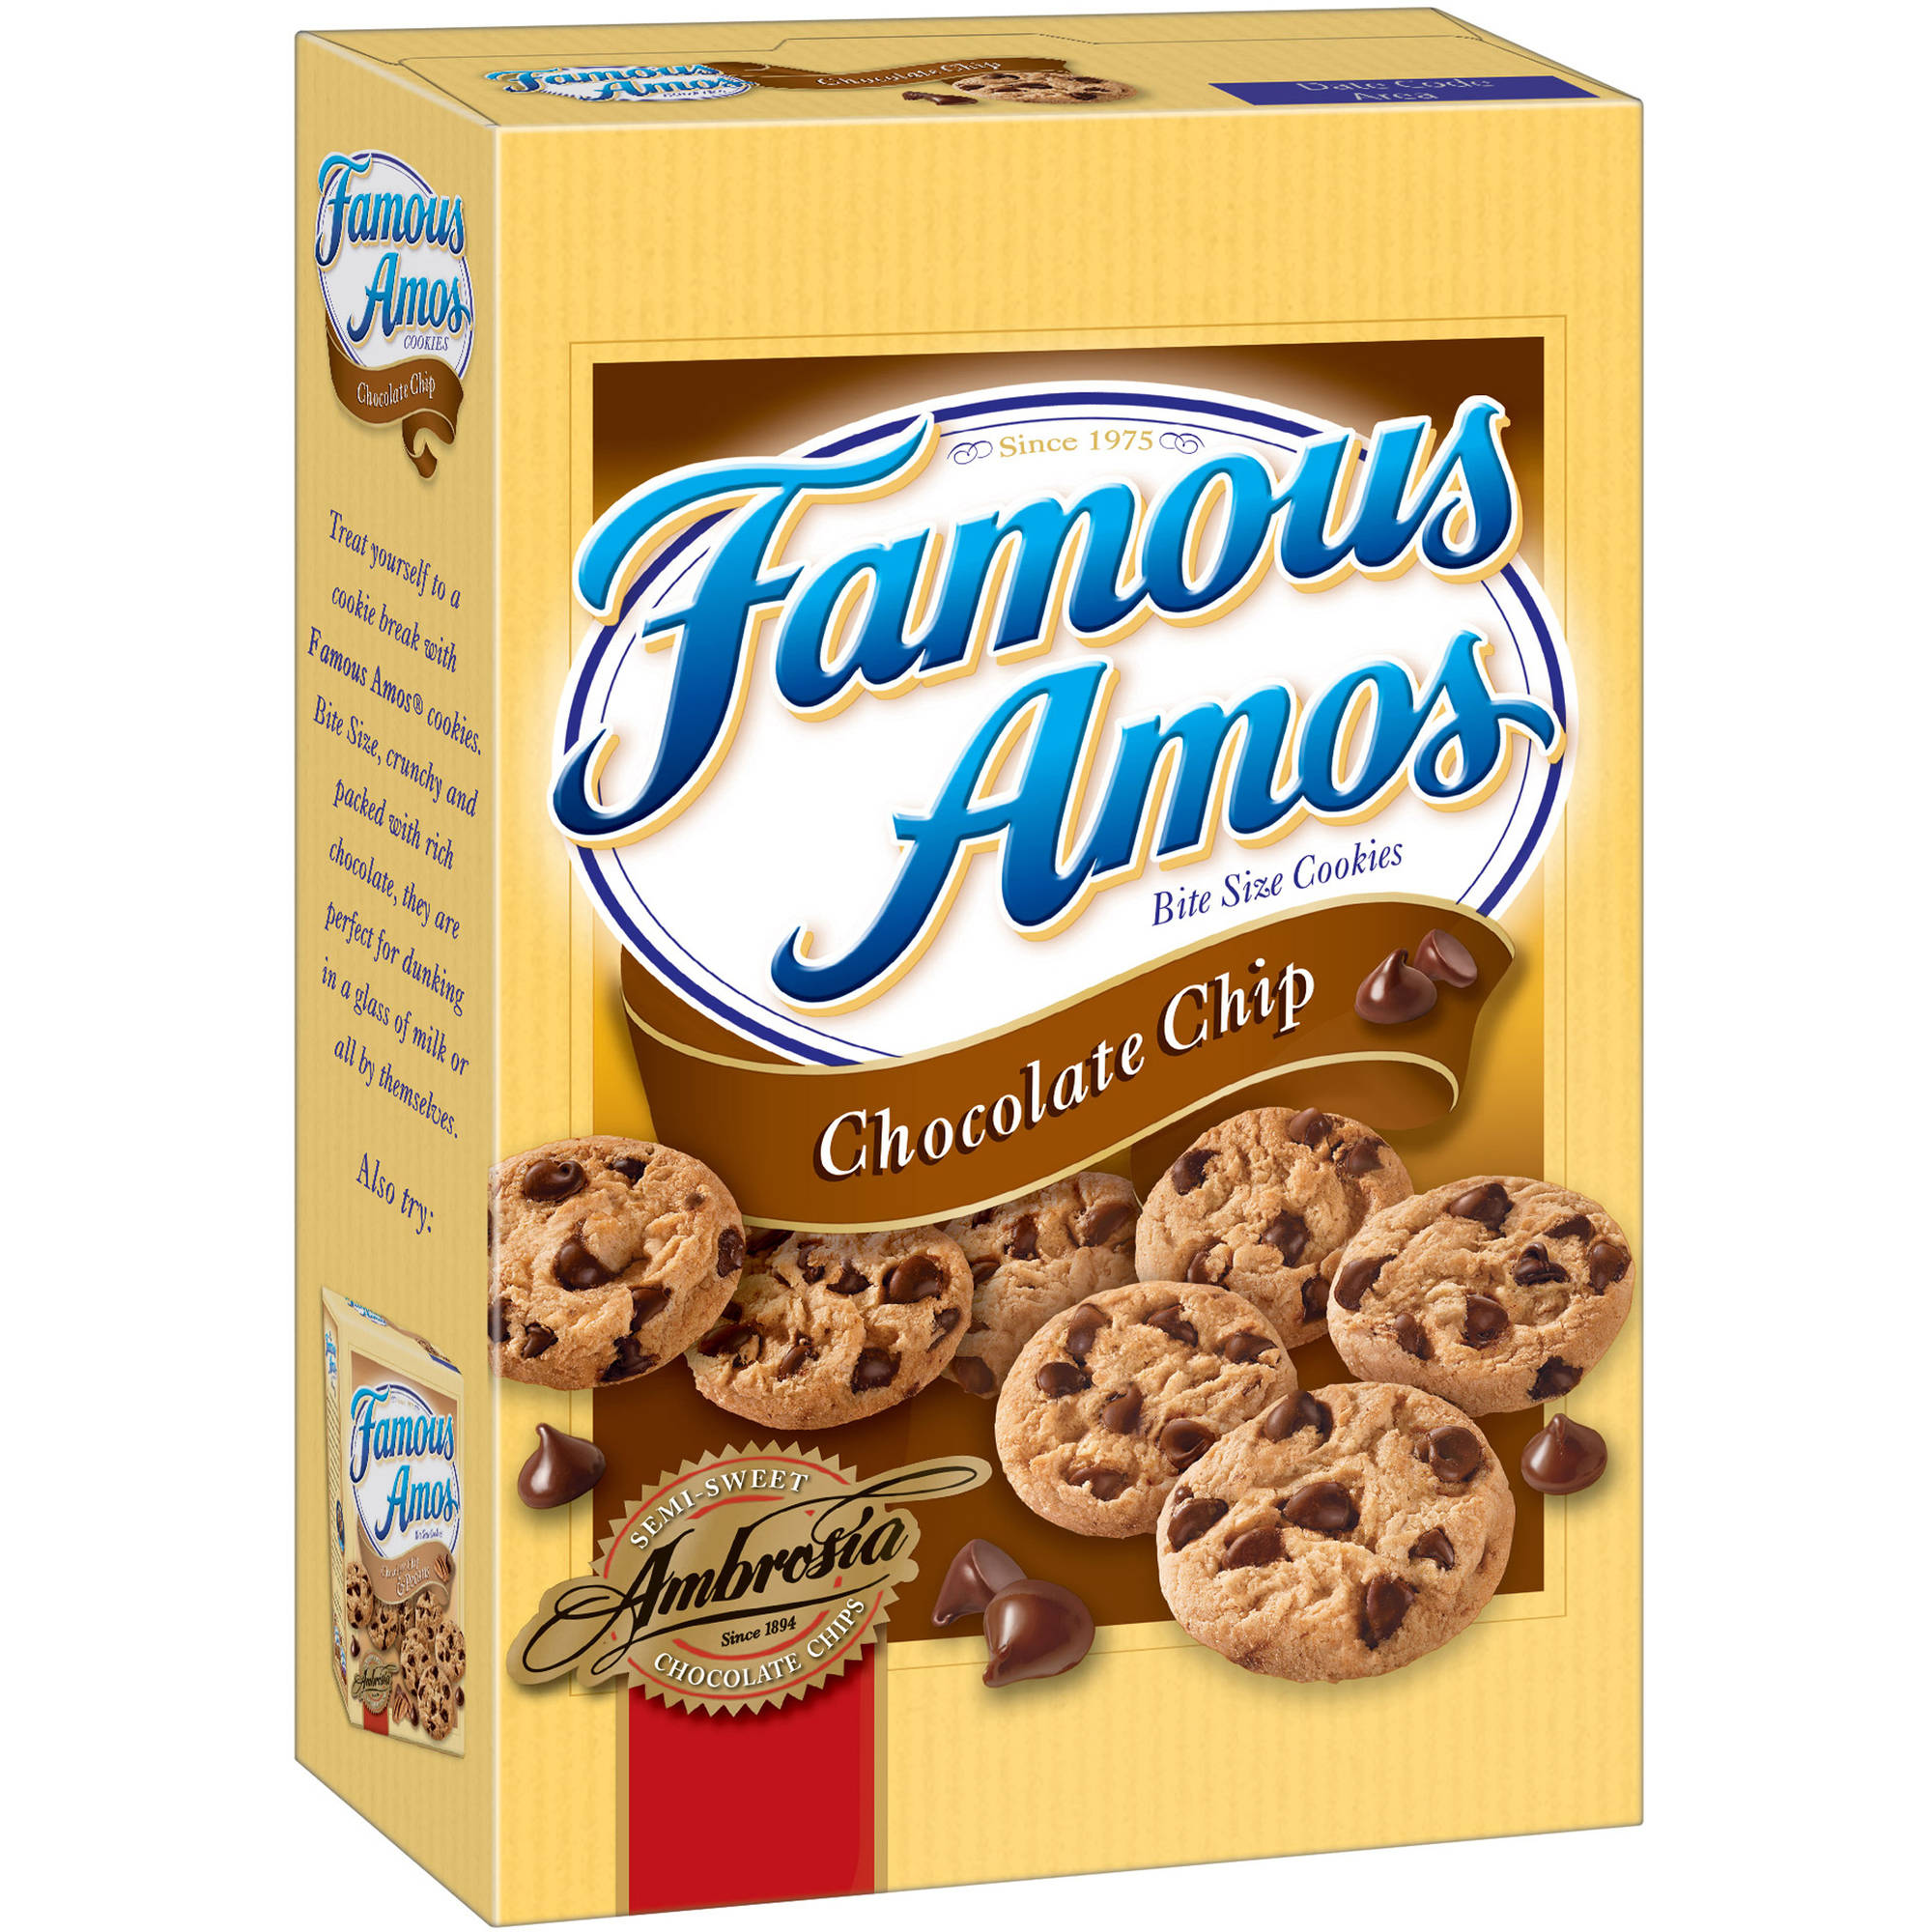 Famous Amos Chocolate Chip Cookie Box (Pack of 12)